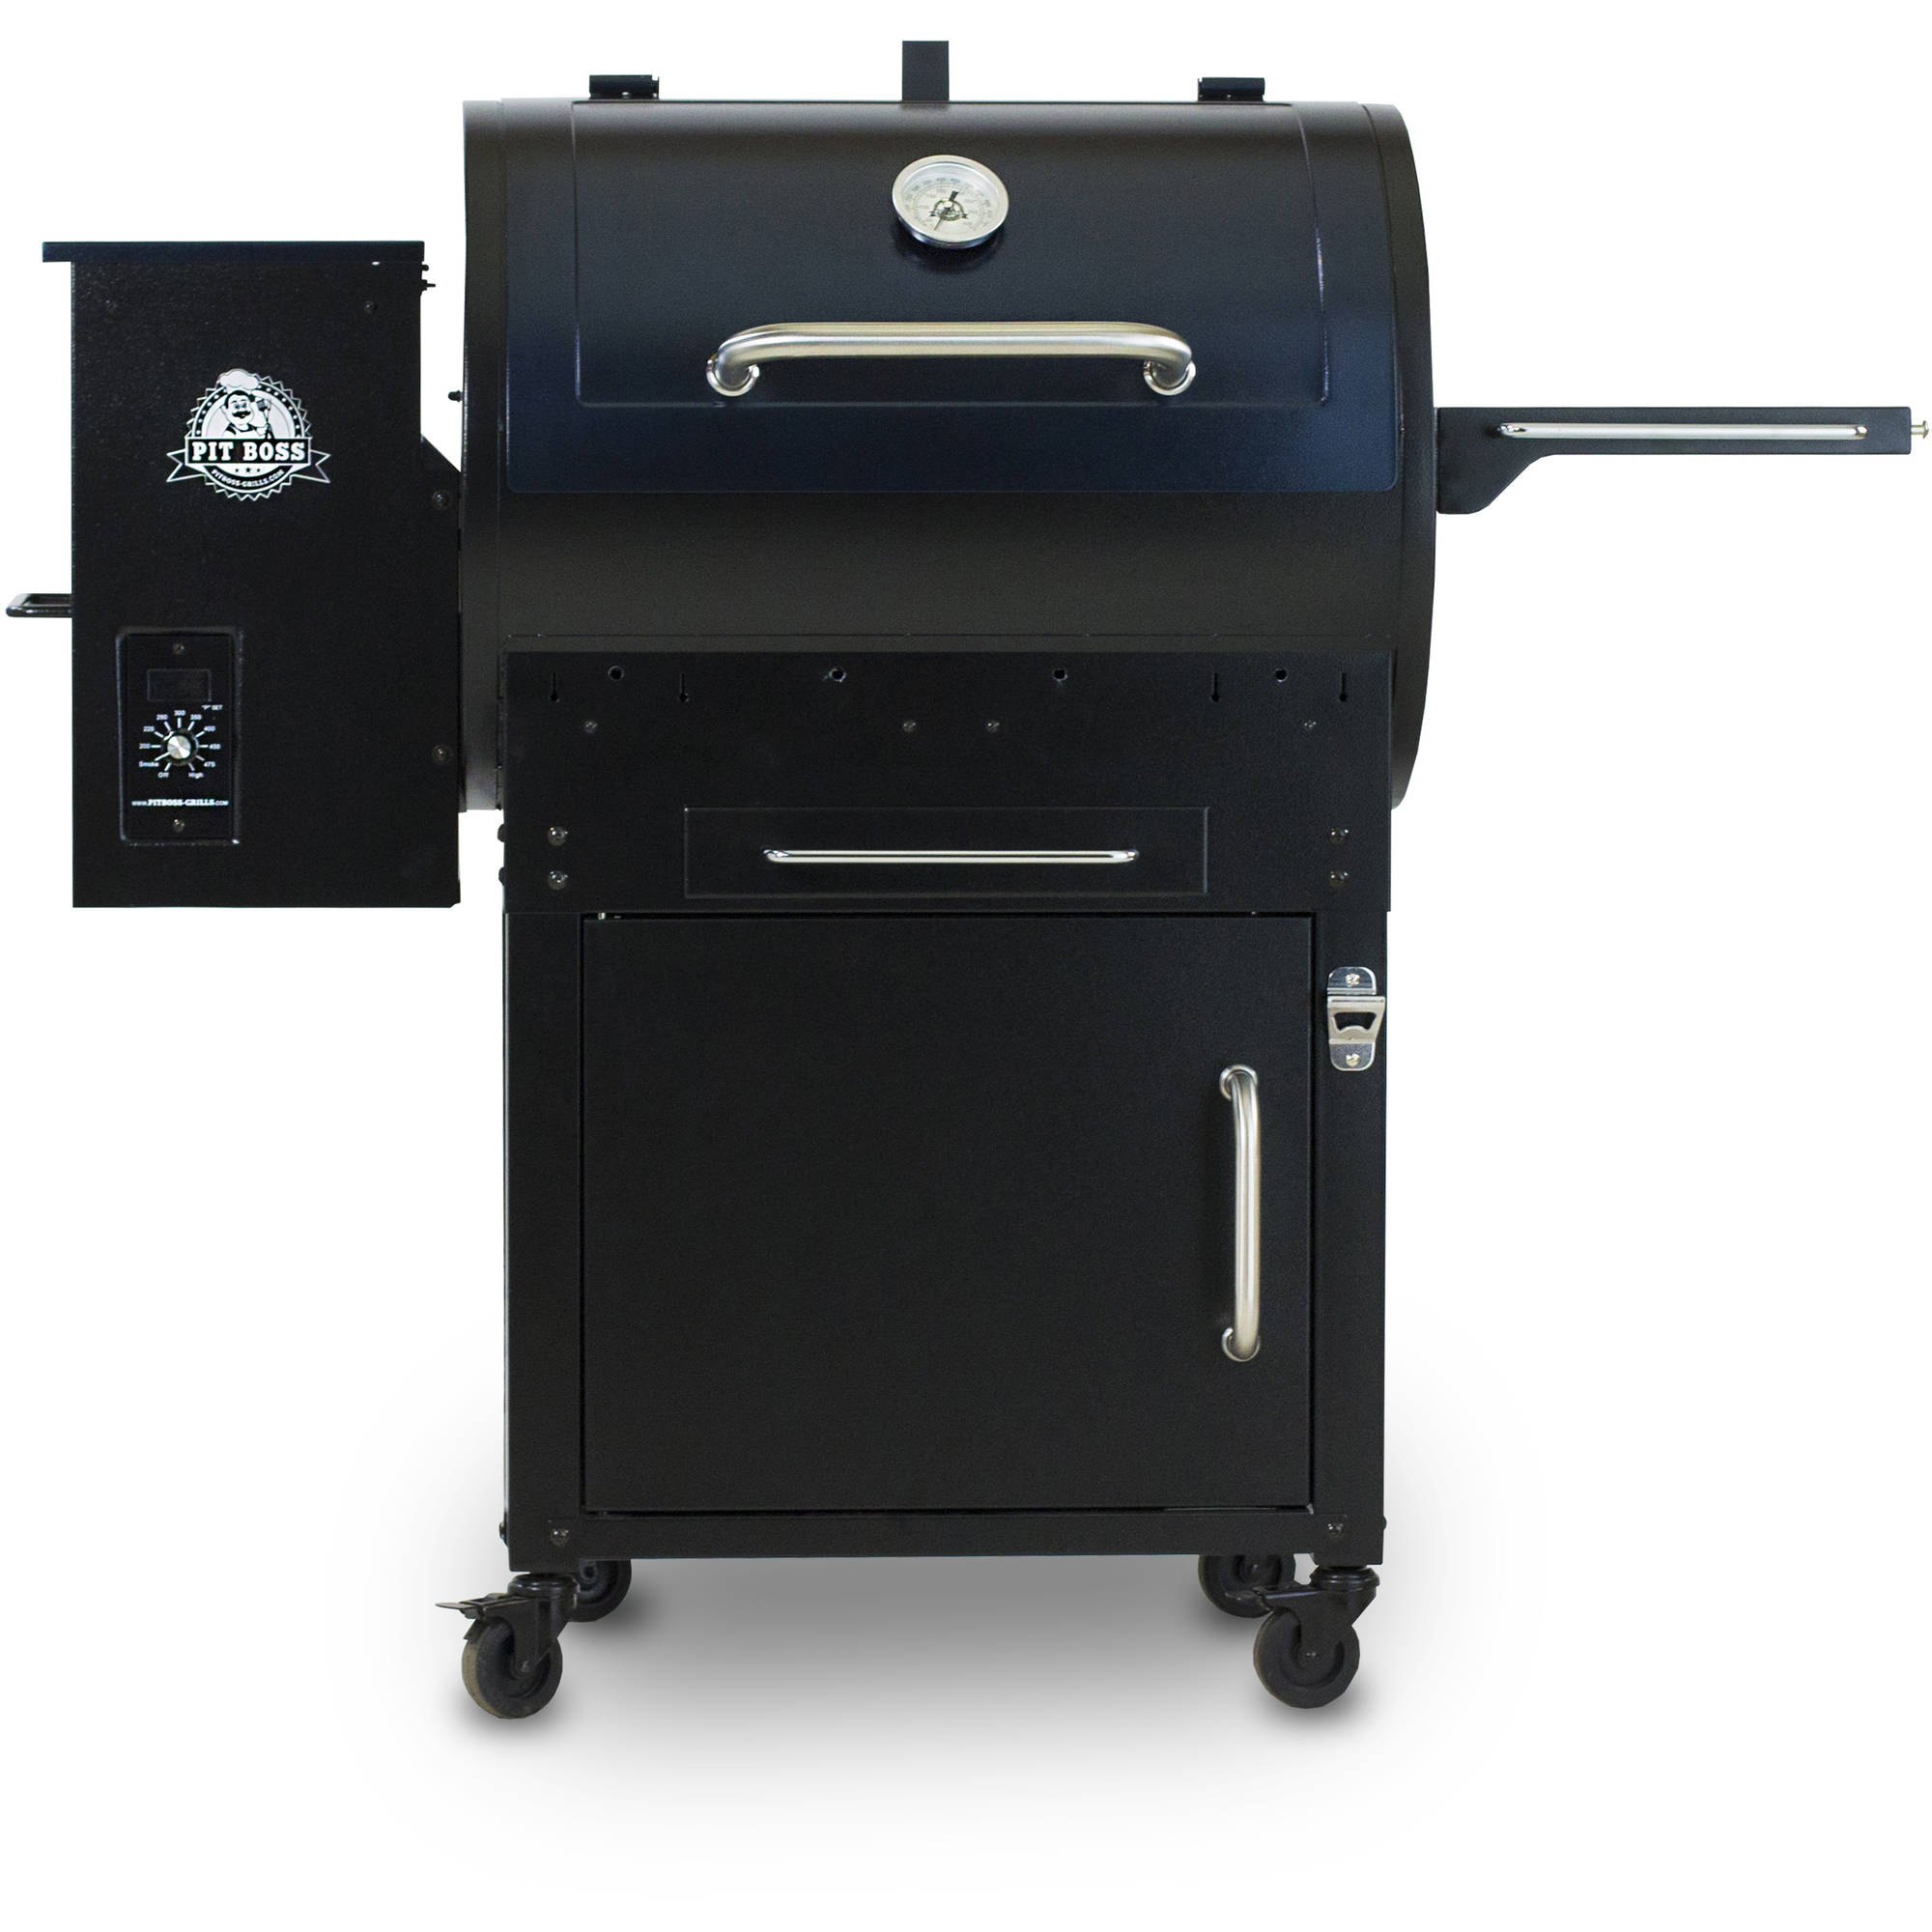 Wood Fired Pellet Grill With Flame Broiler & Cart - Pit Boss